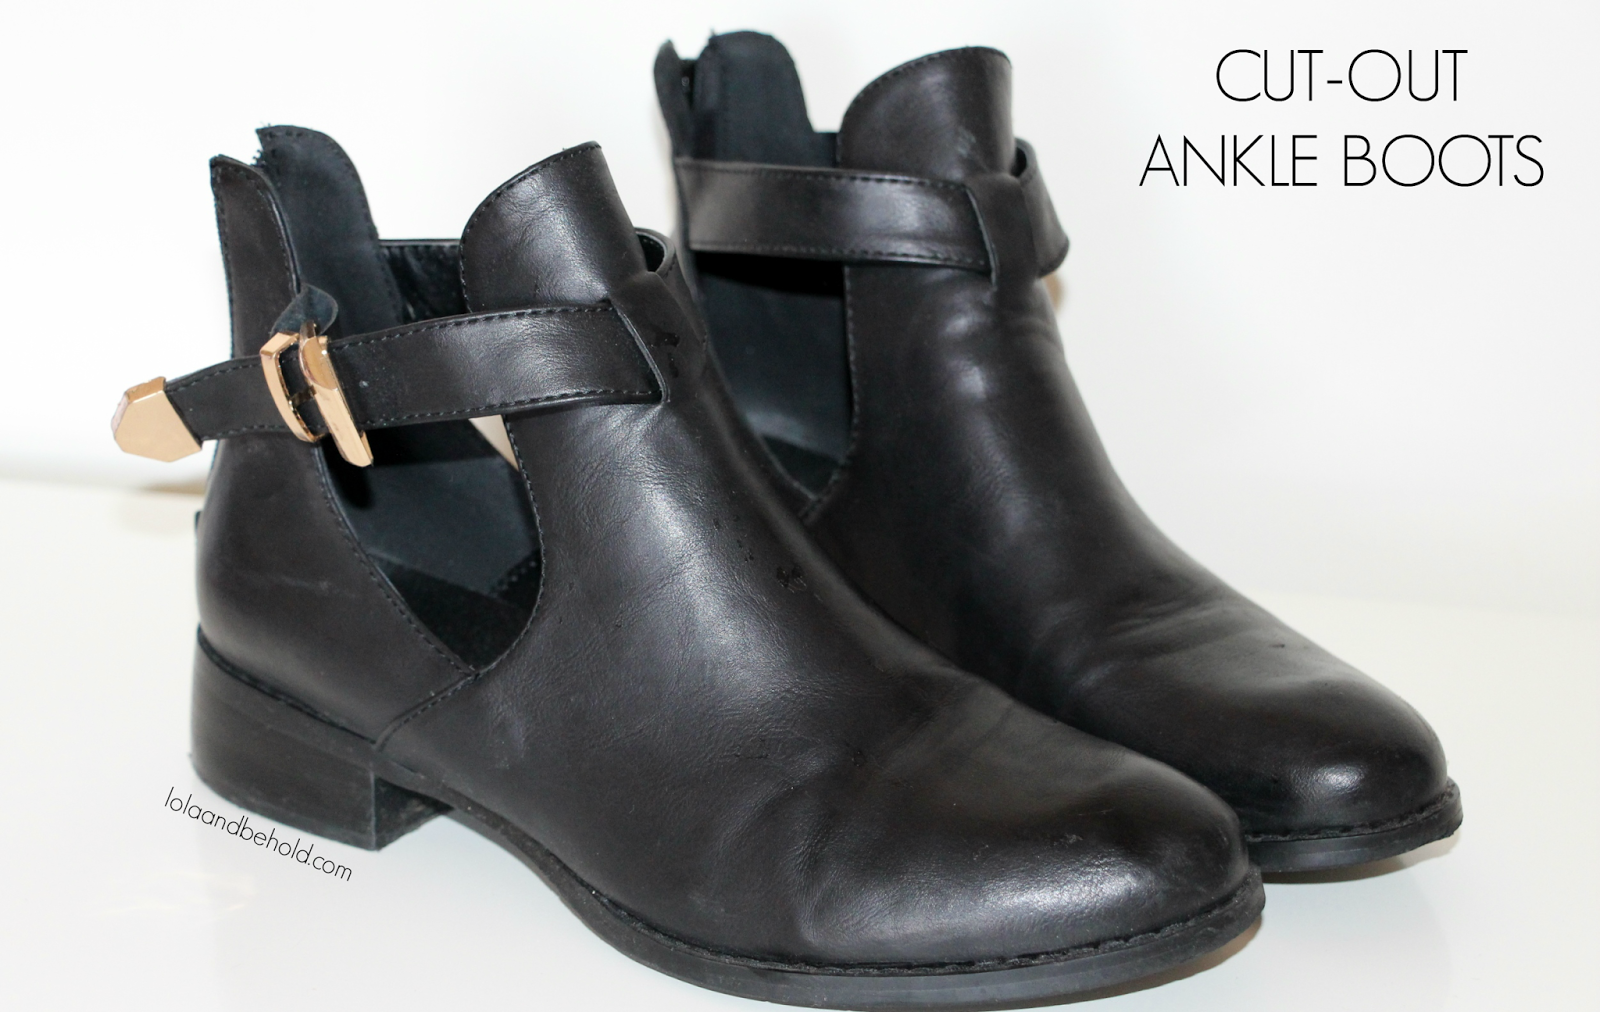 How to Wear Ankle Cut Out Boots Fashion Cut-out Ankle Boots